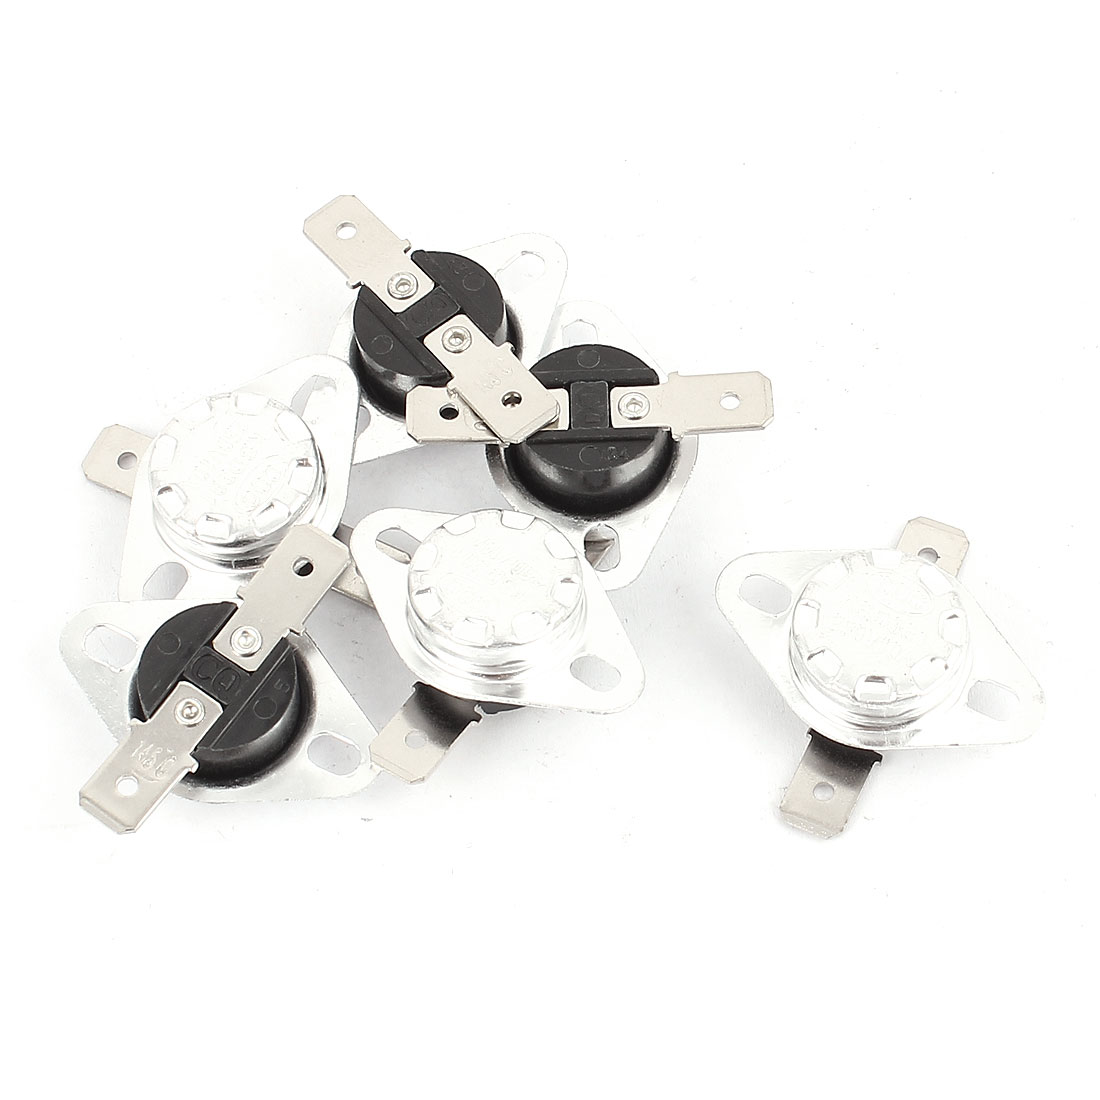 6 Pcs KSD301 Temperature Control Switch Thermostats 250VAC 10A 145 Celsius N.C.